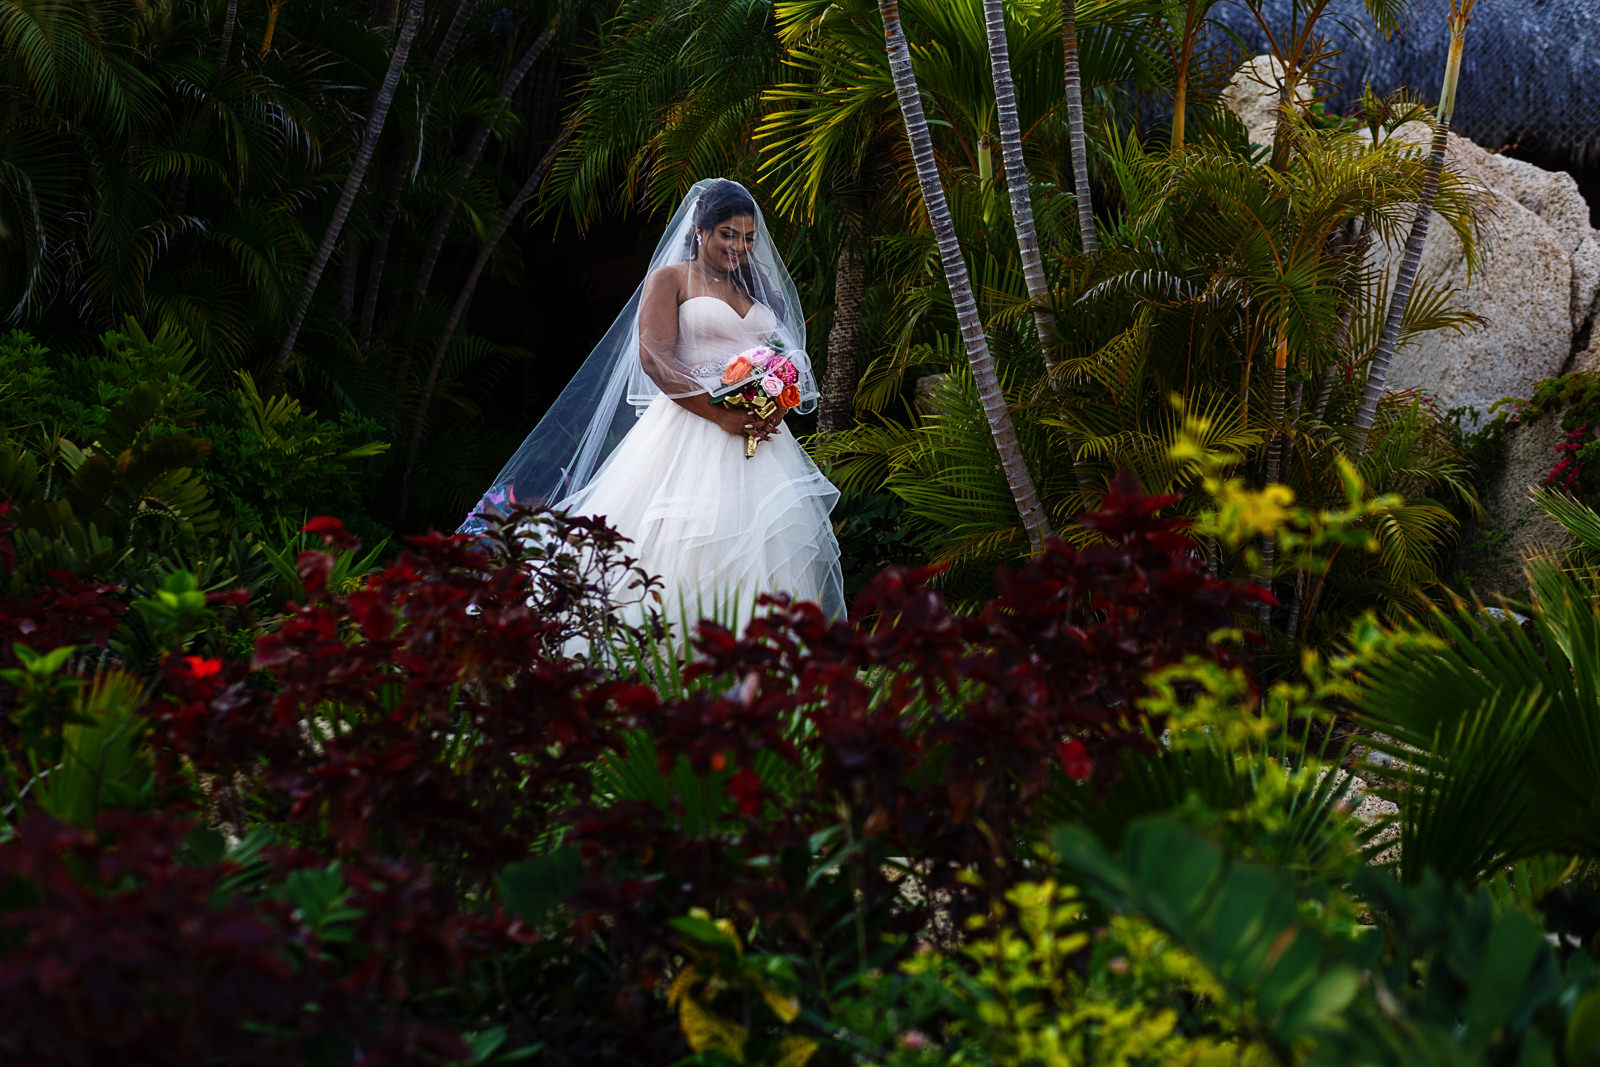 Bride surrounded by greenery with different plants and colors